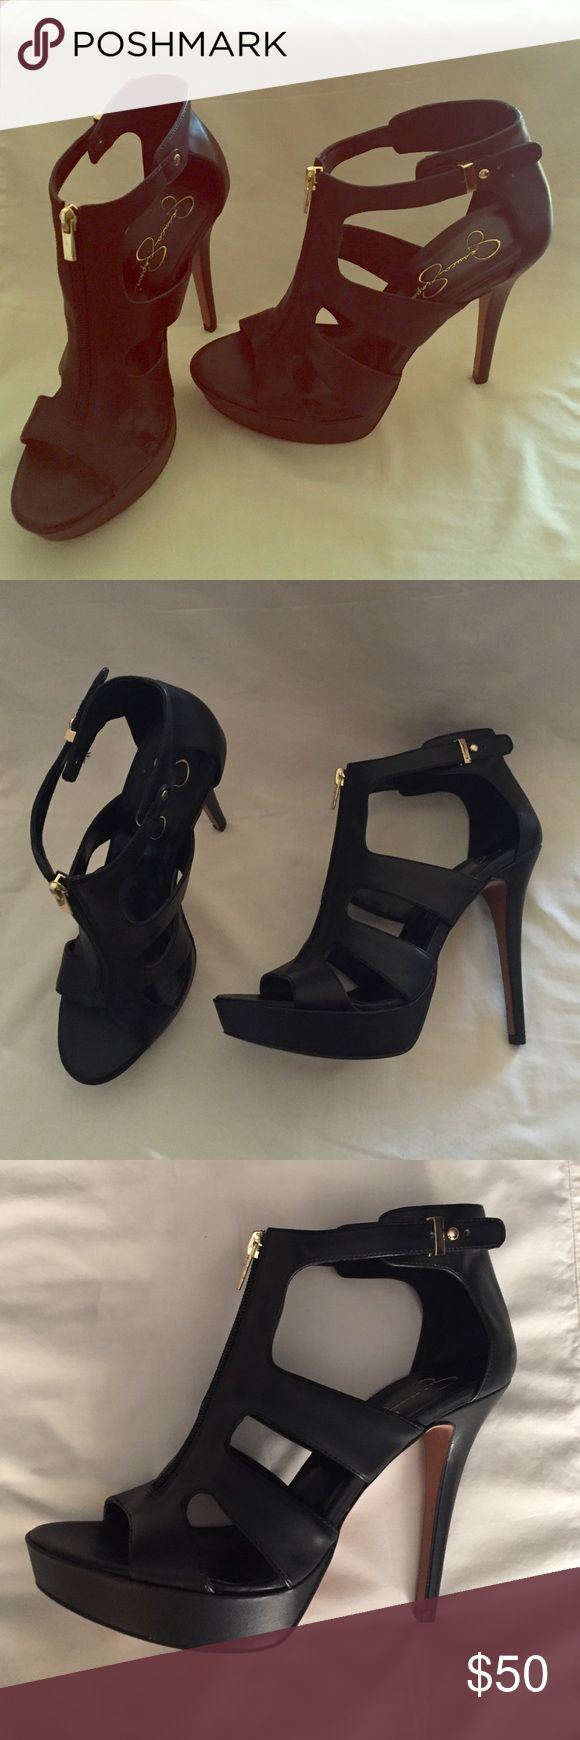 Beautiful black Jessica Simpson pumps! Never worn black pumps with gold zipper and buckle! Jessica Simpson Shoes Heels